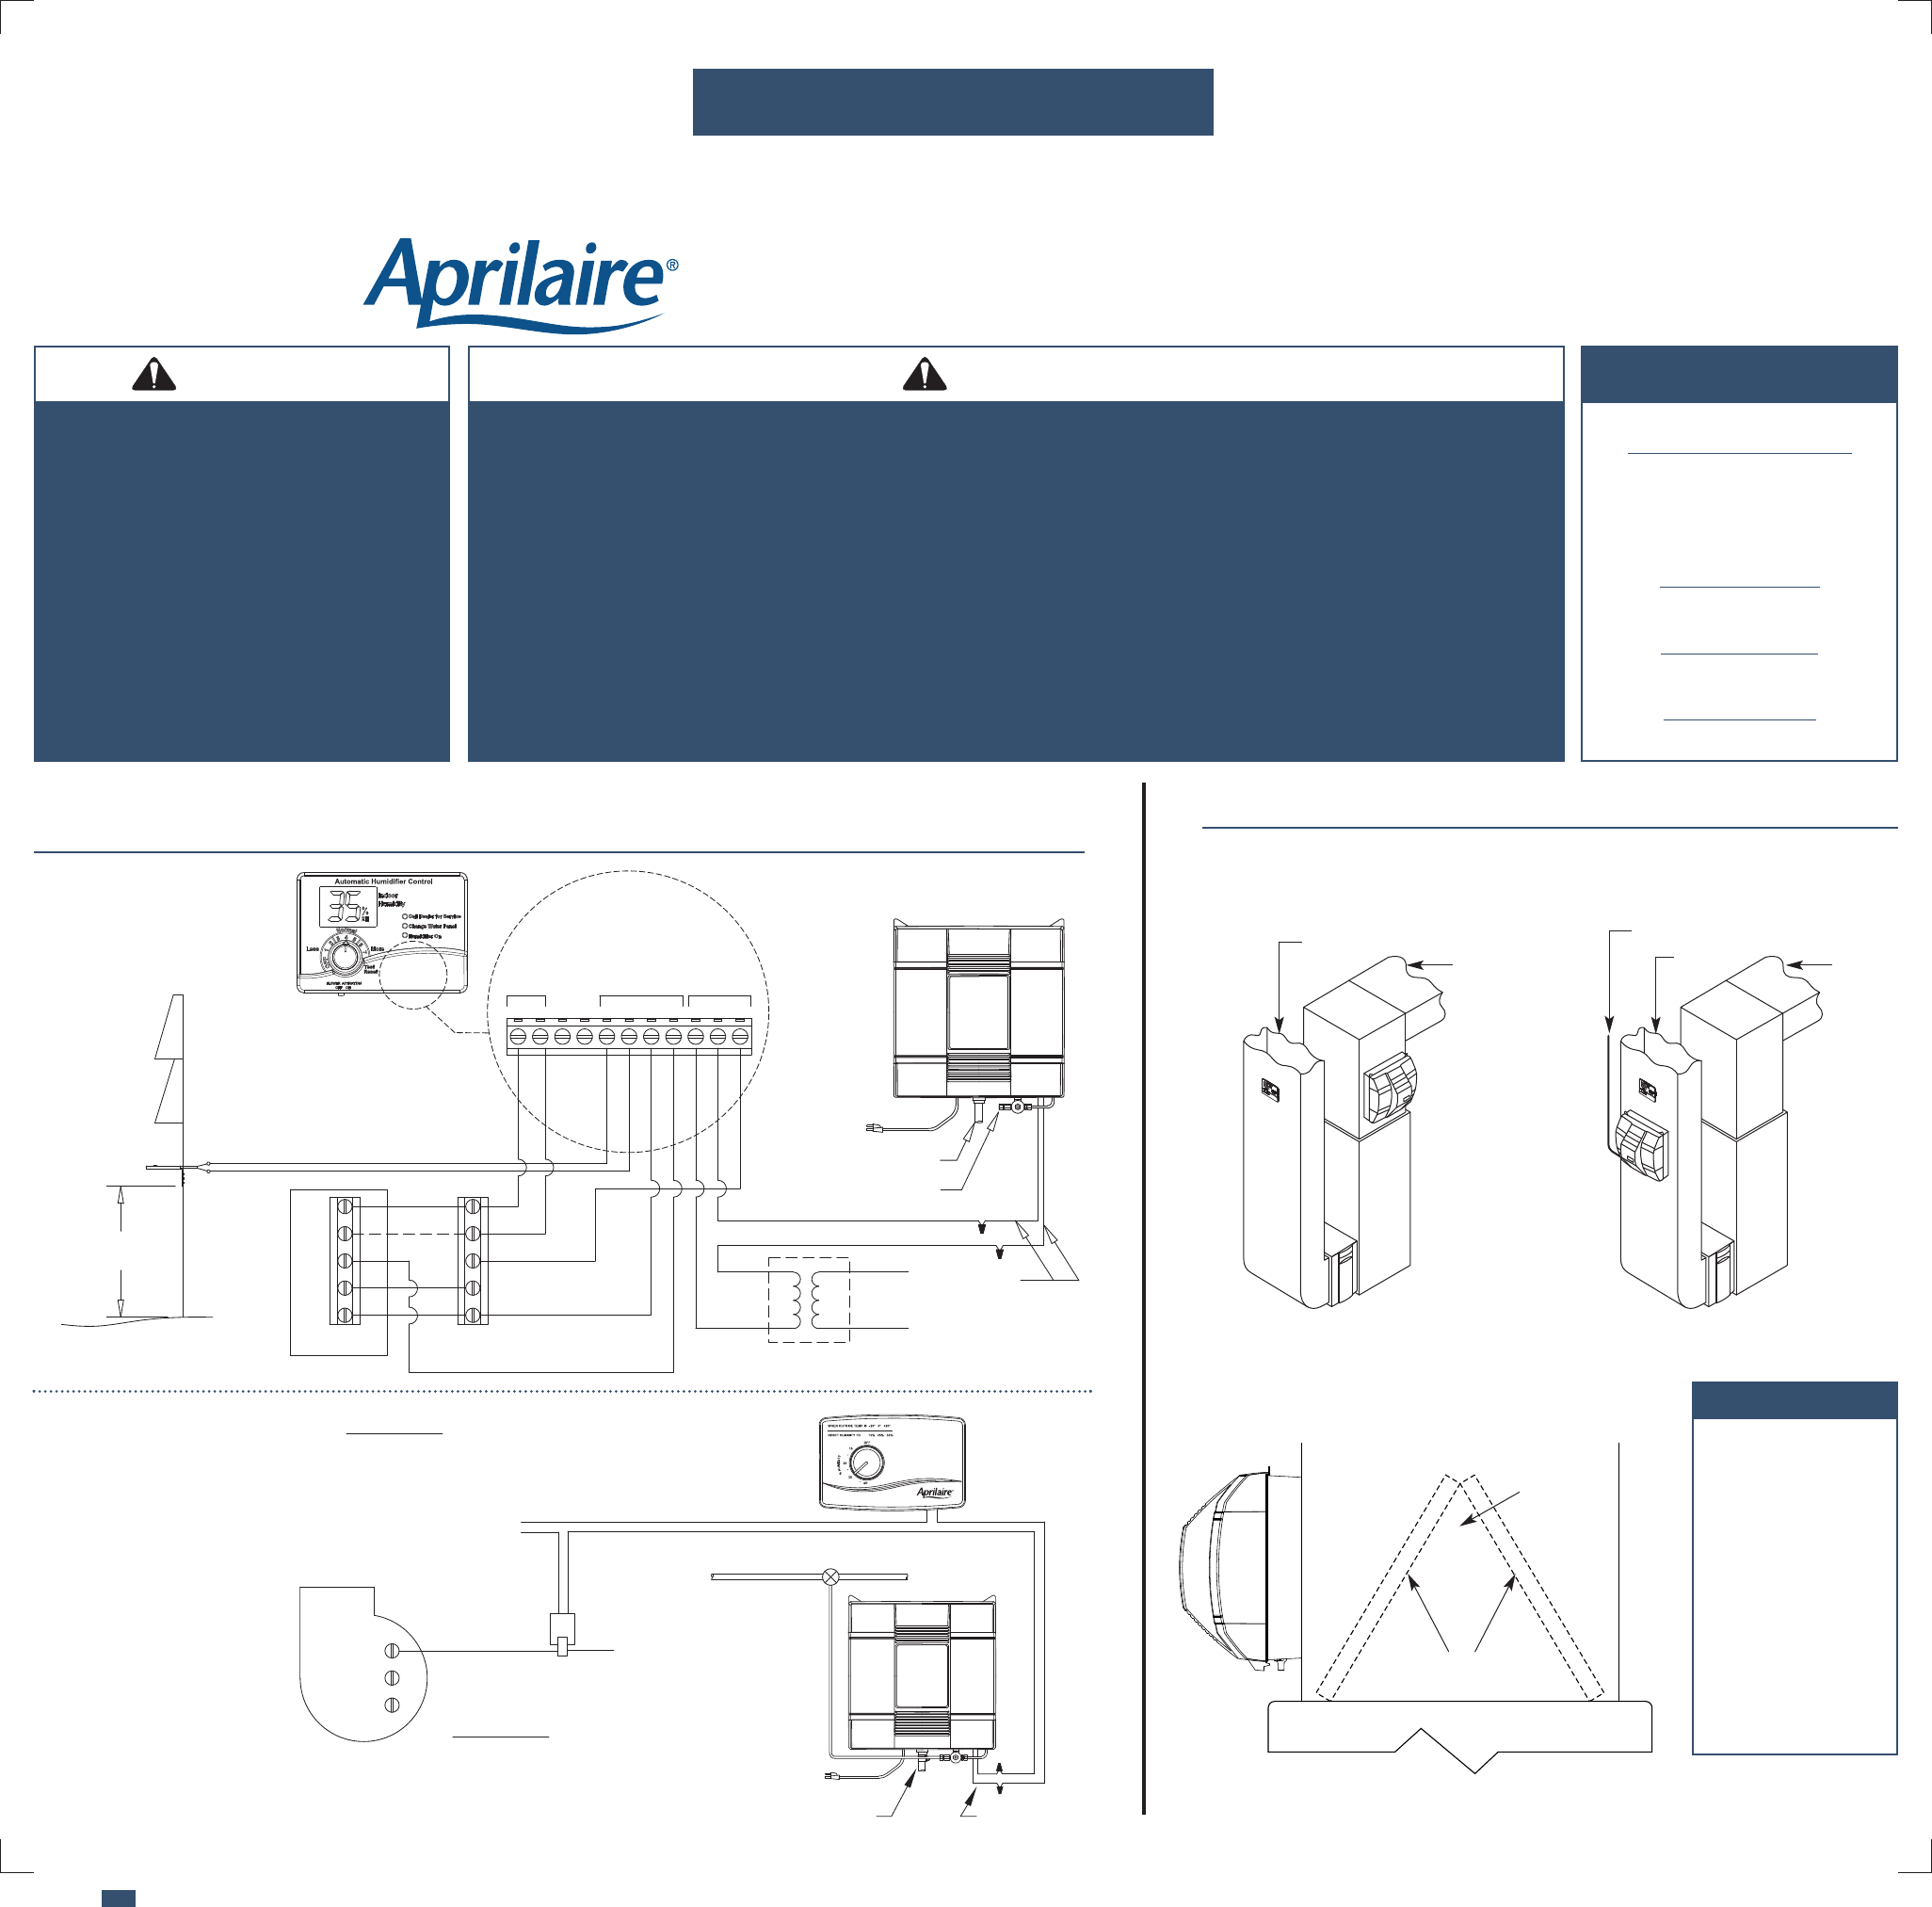 1b30034a 6aa8 4b2b 9595 5fd4a58526b5 bg1 wiring diagram for aprilaire 700 humidifier the wiring diagram aprilaire 700 humidifier wiring diagram at aneh.co